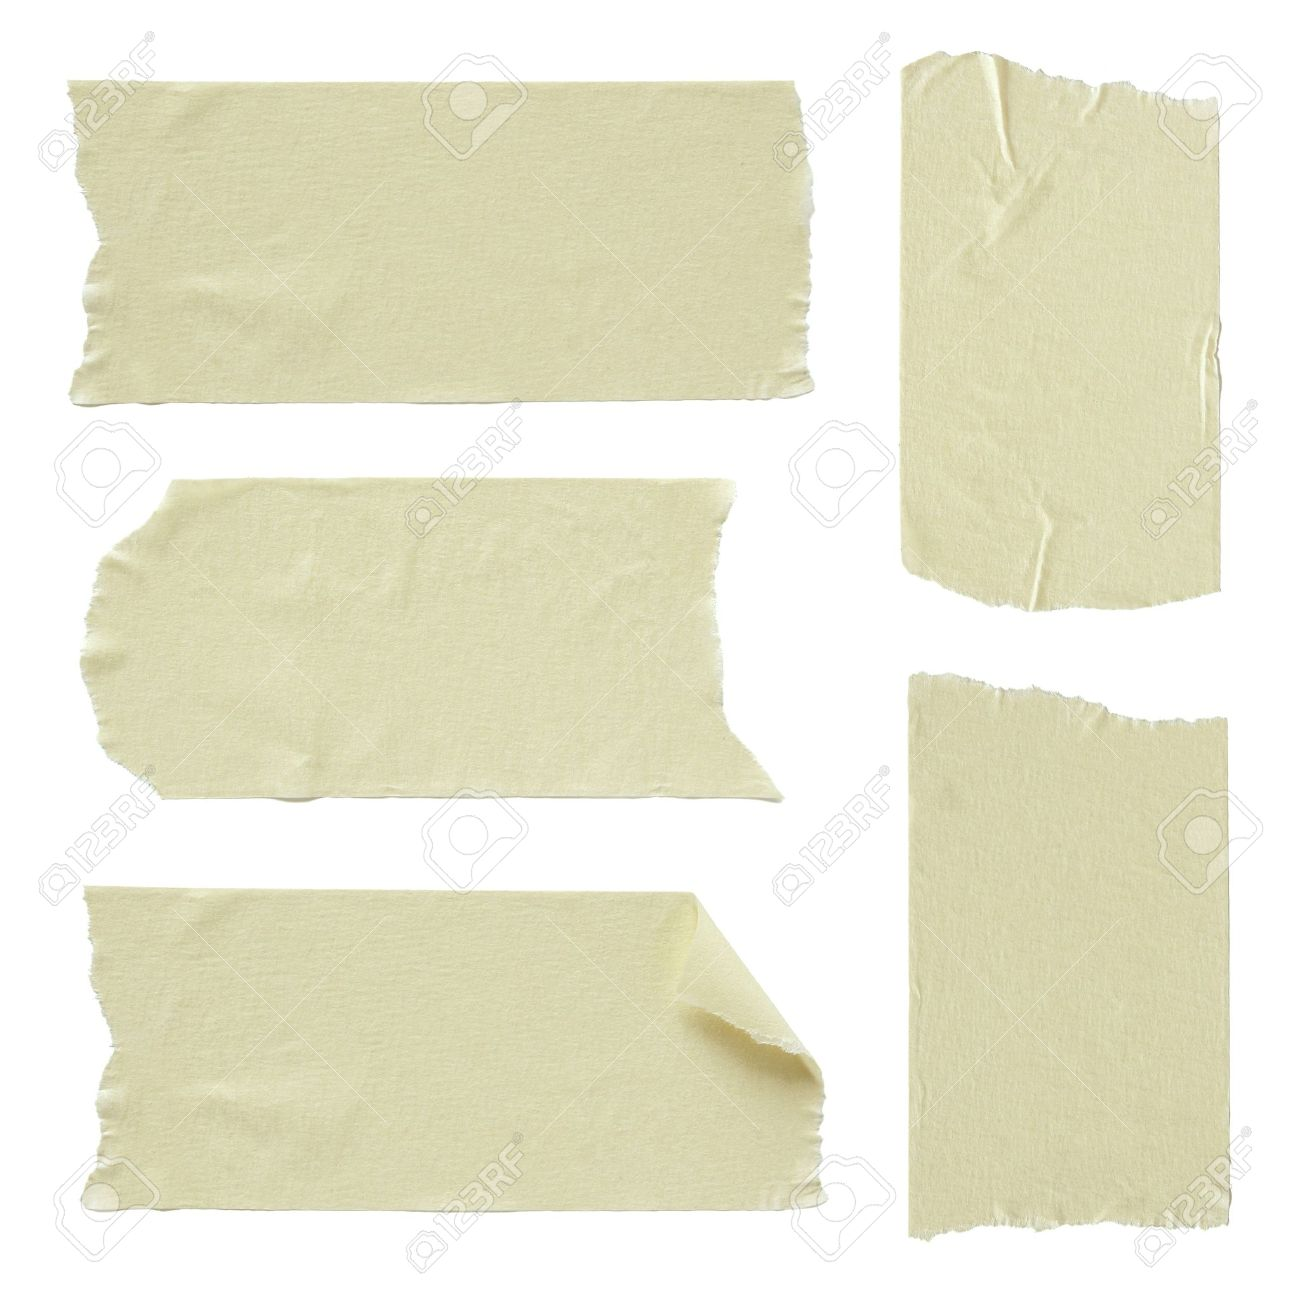 Set Of Torn Masking Tape Isolated On White Stock Photo, Picture And ...